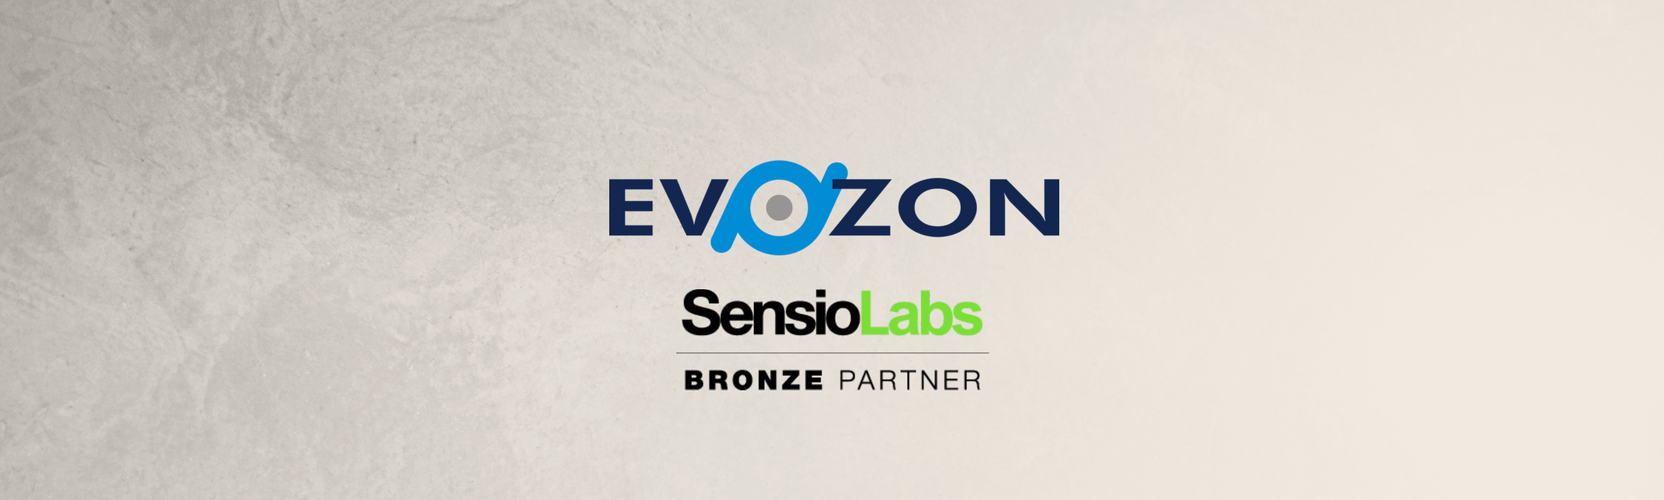 sensiolabs bronze partner milestone evozon